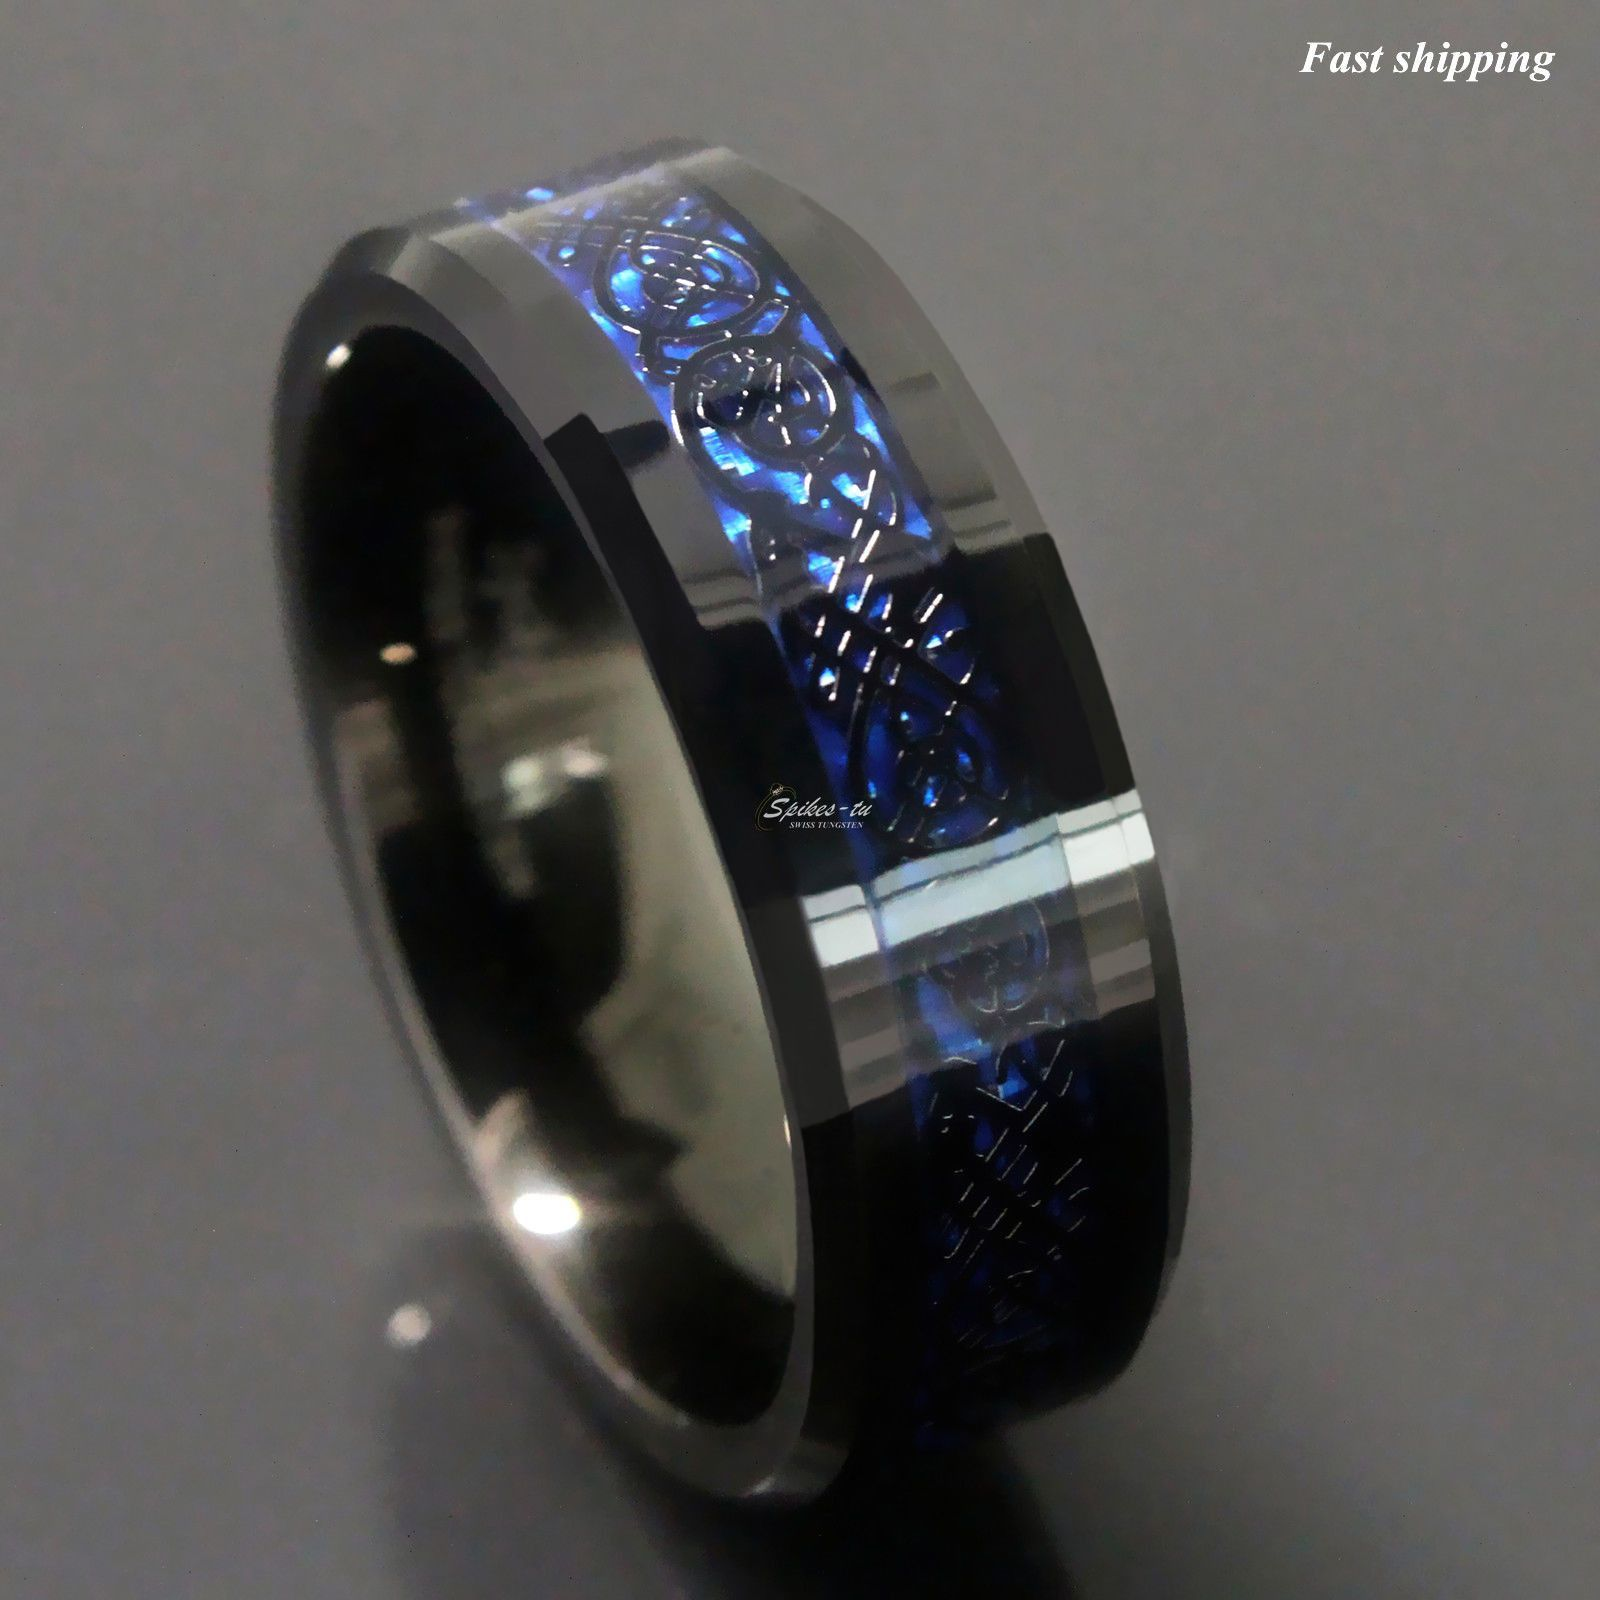 hammered for black rings p in view quick finish men designer ring cobalt chrome wedding